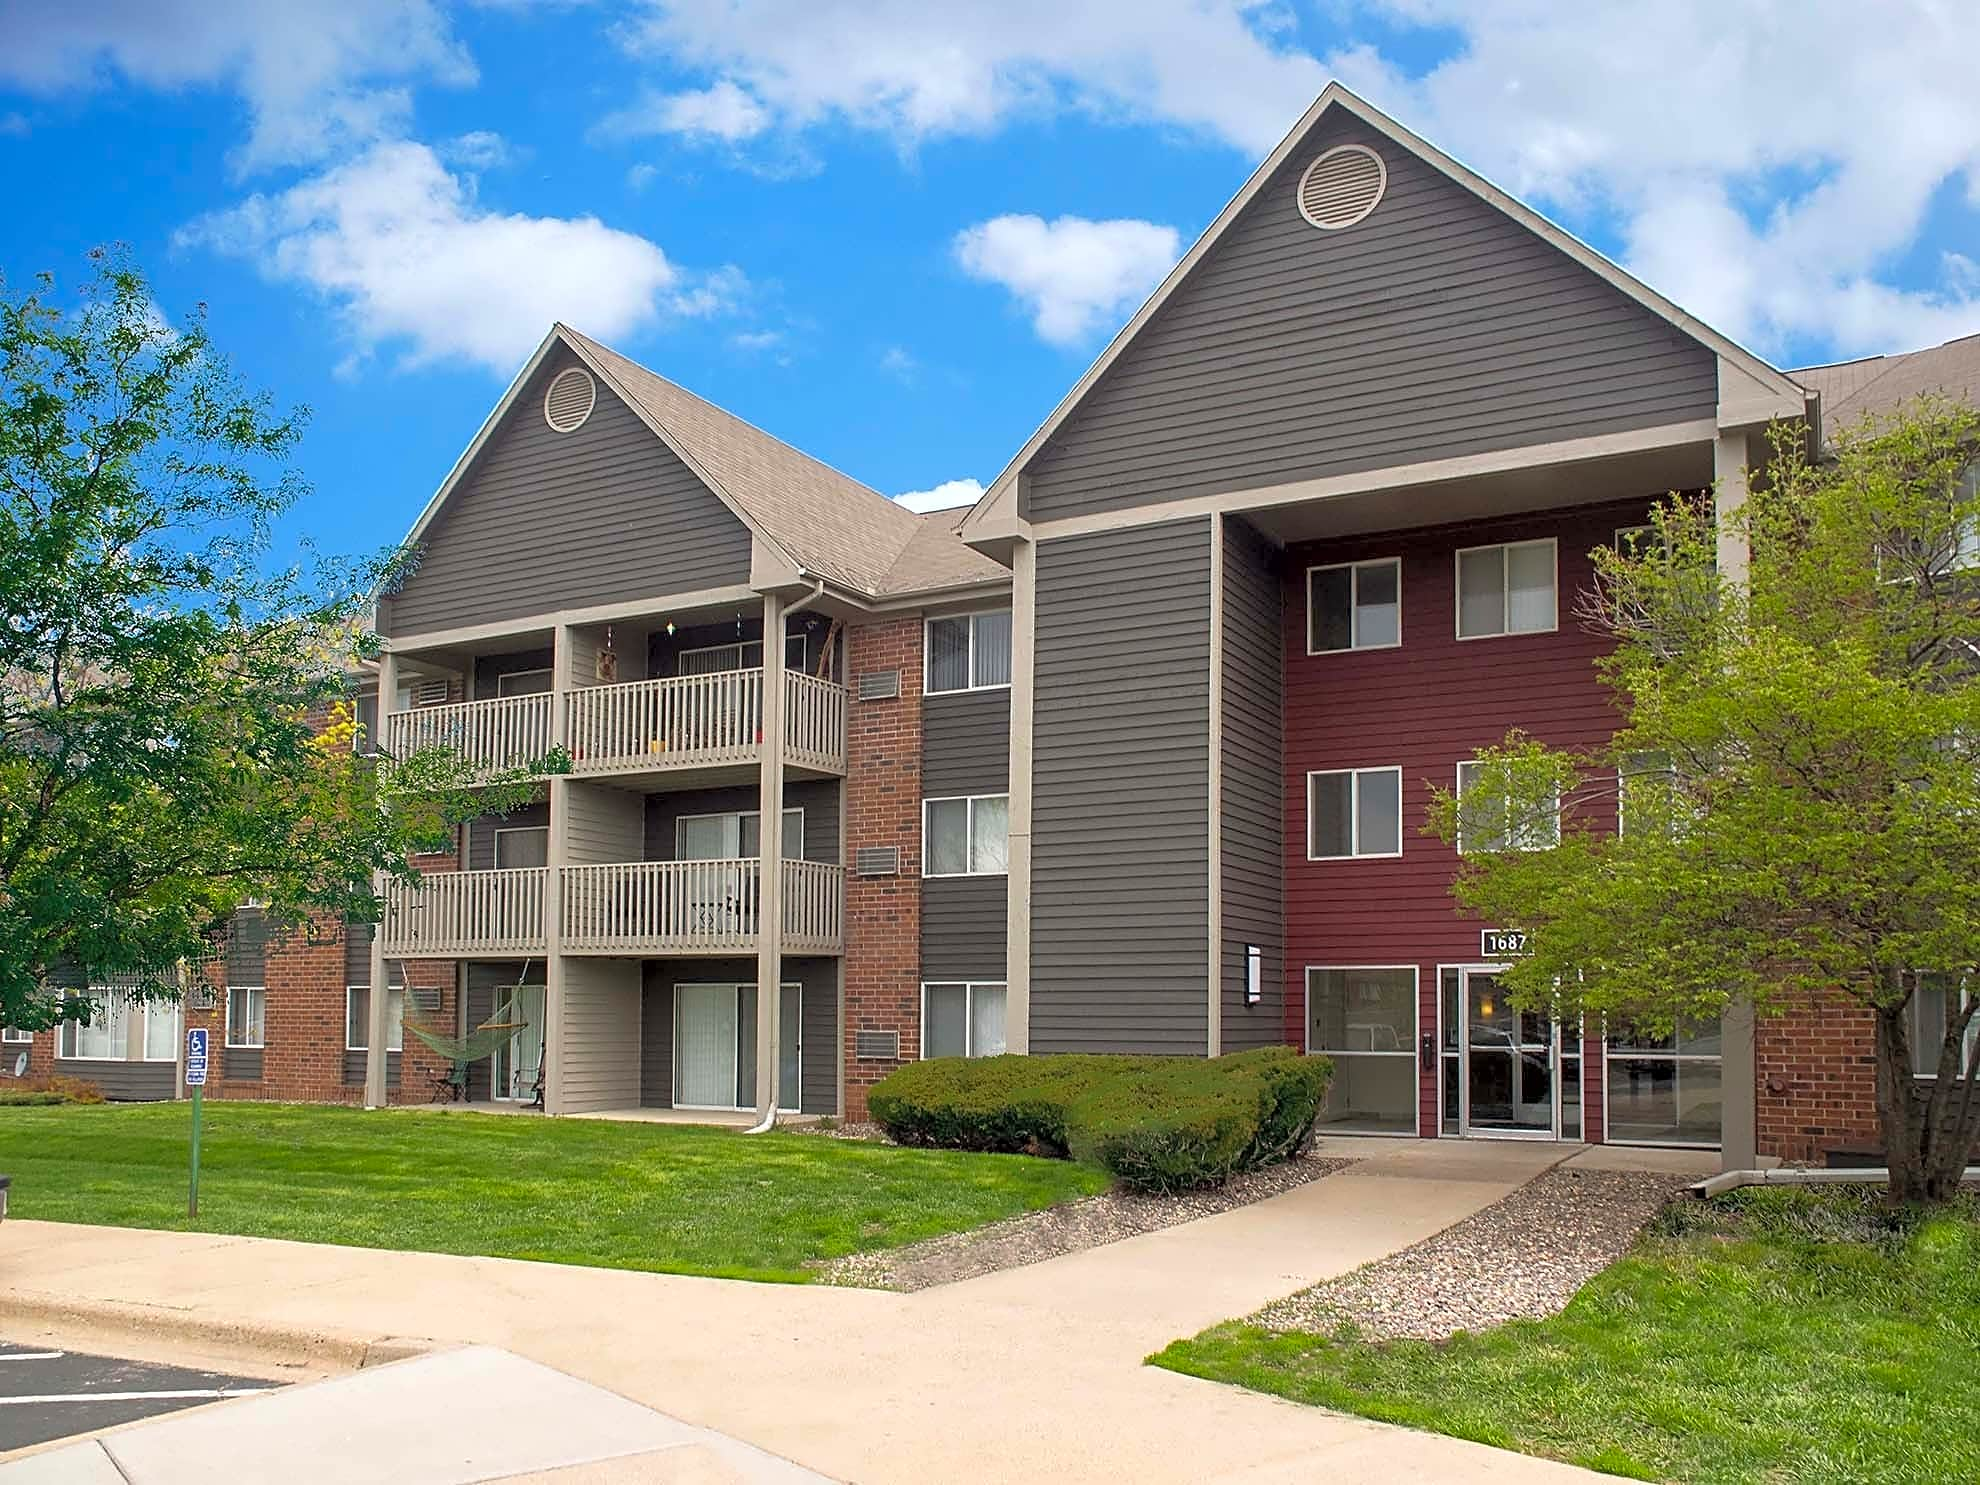 Photo: Woodbury Apartment for Rent - $1588.00 / month; 3 Bd & 2 Ba